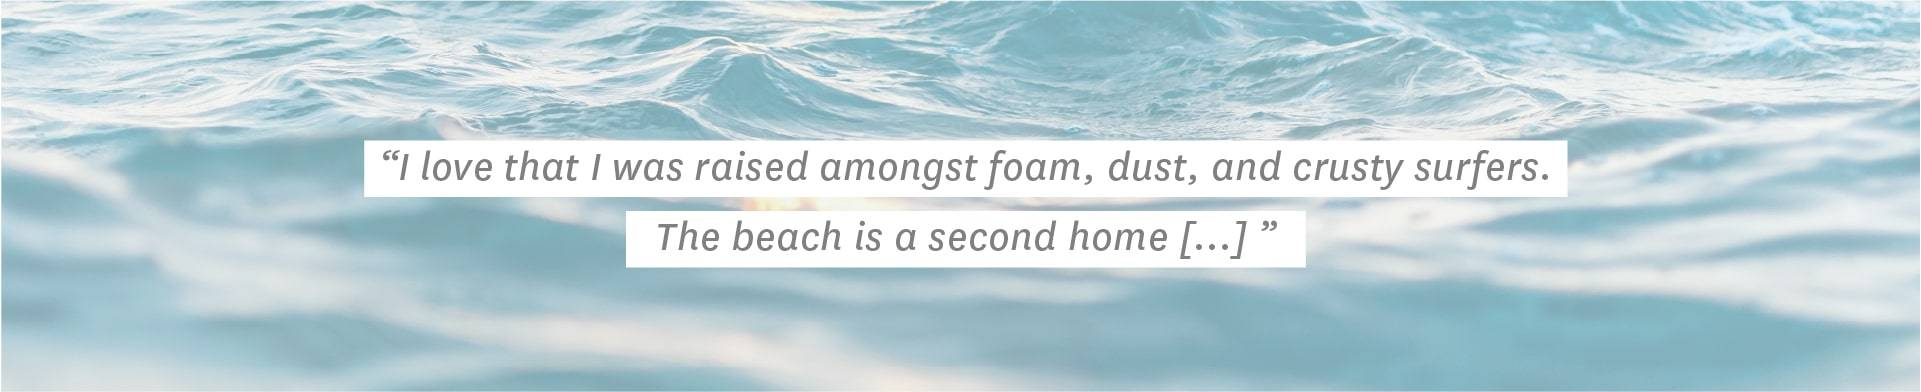 """""I love that I was raised amongst foam, dust, and crusty surfers. The beach is a second home [...]"""